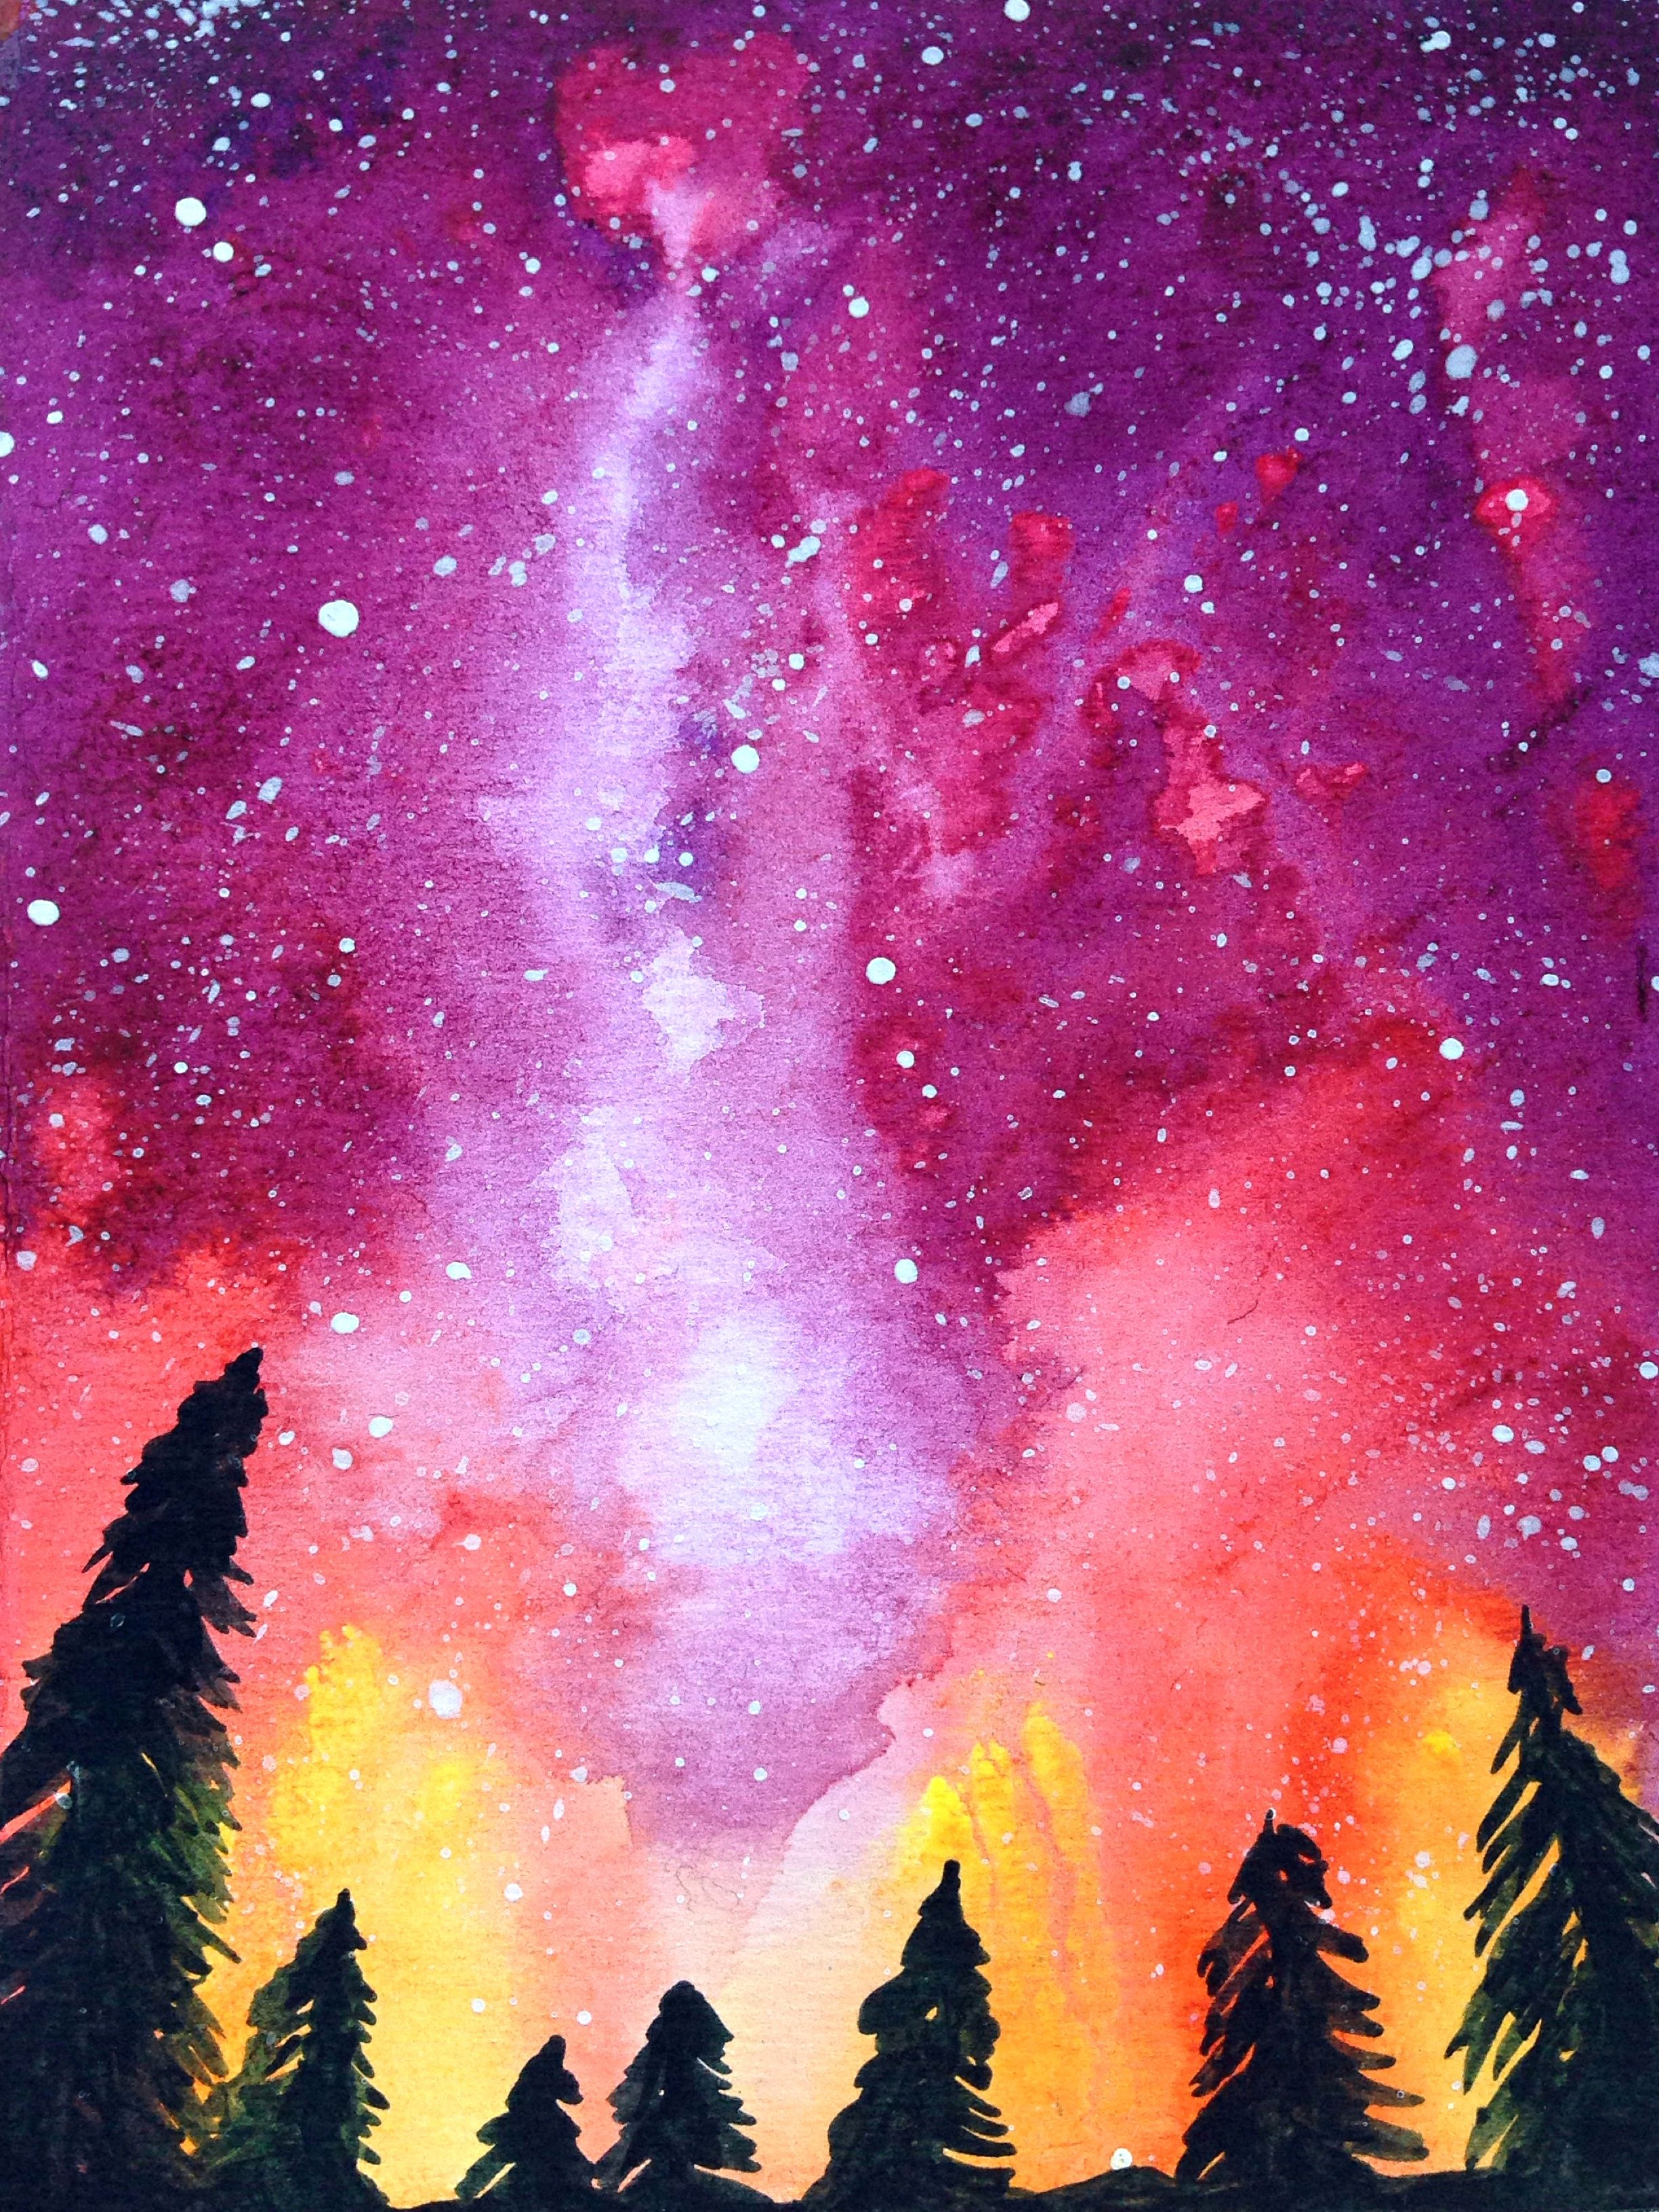 Painting Emily Sun All Things Creative Watercolor Galaxy